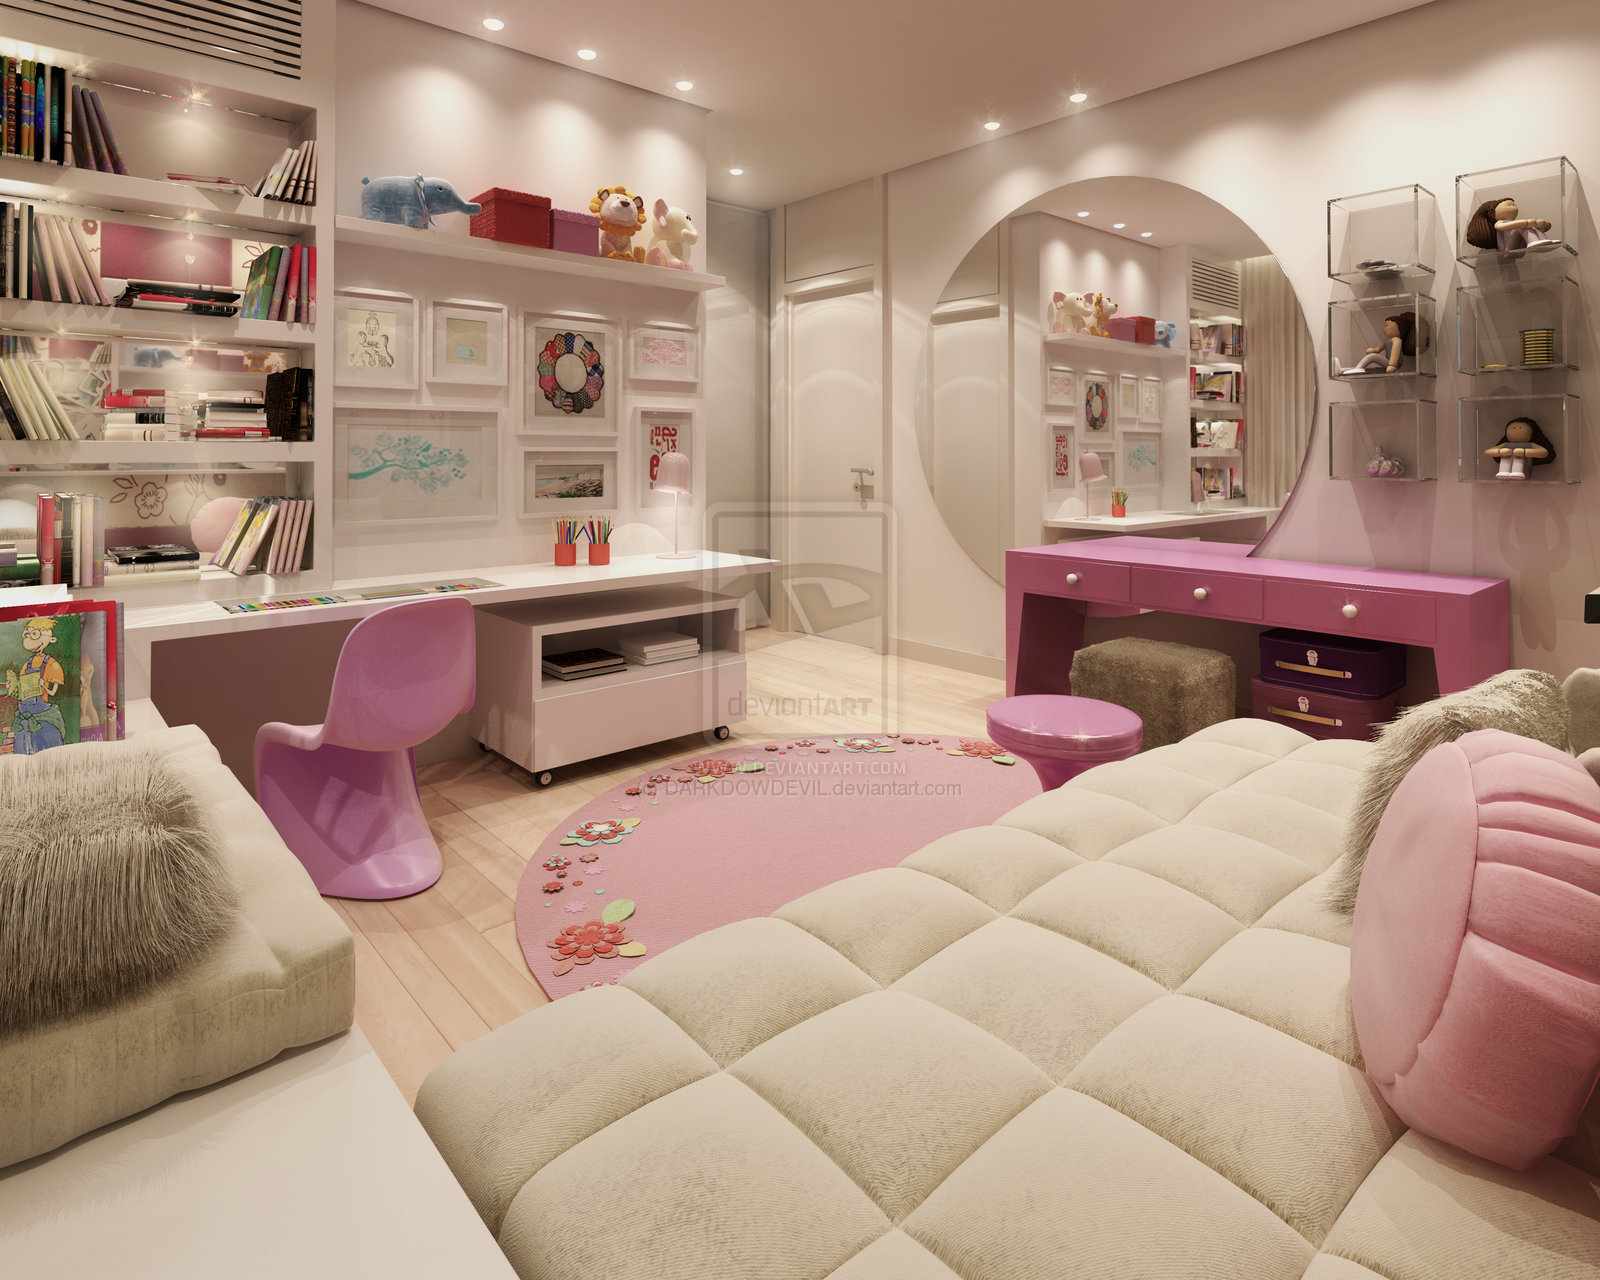 Incredible Rooms for Teenage Girl Bedroom Ideas 1600 x 1280 · 343 kB · jpeg